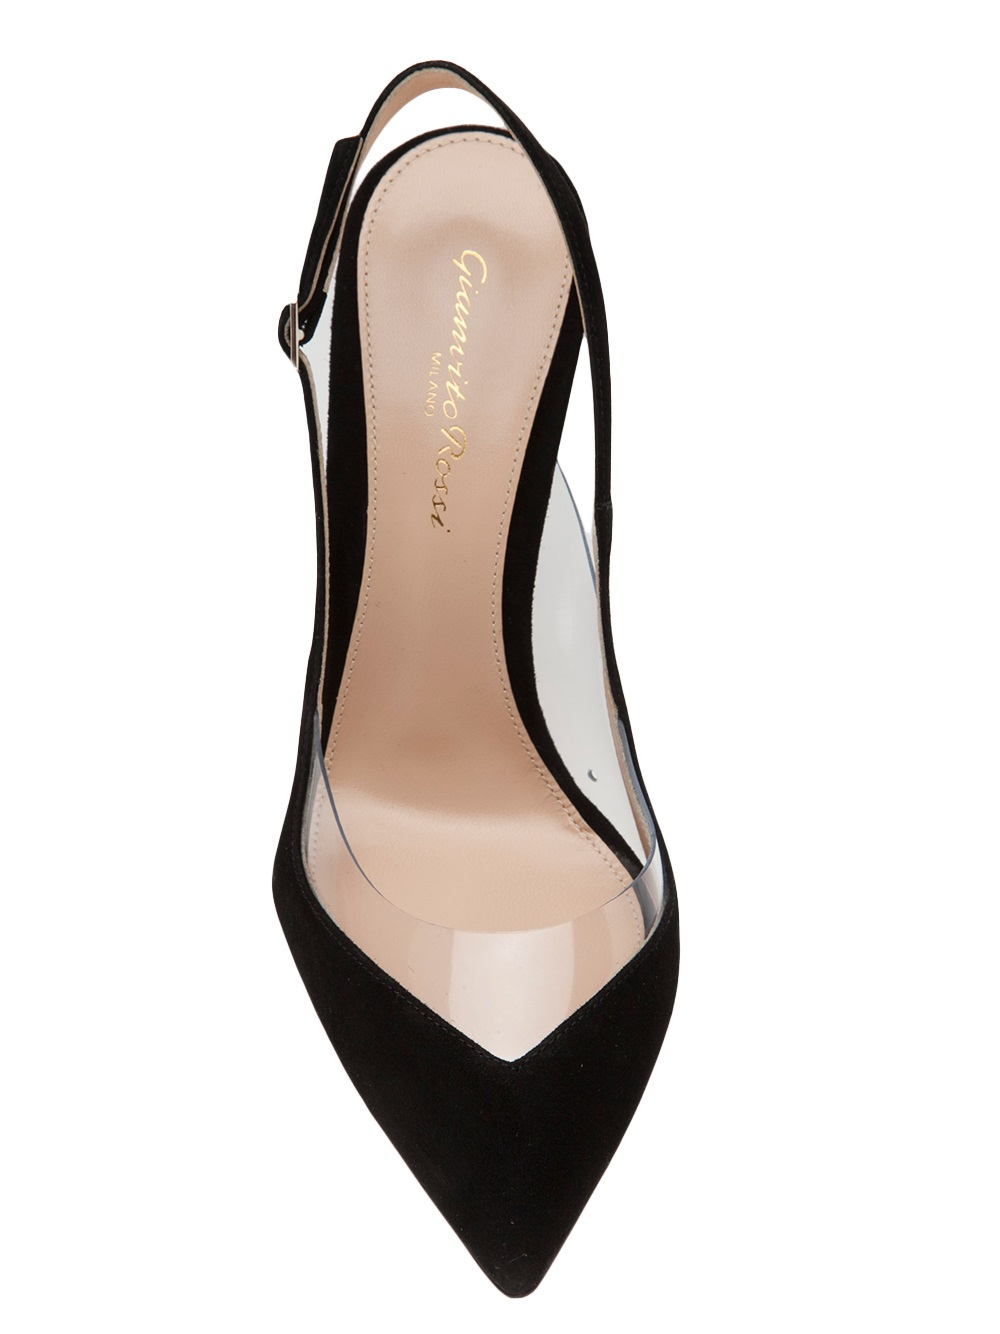 Lyst - Gianvito Rossi Slingback Kitten Heel in Black